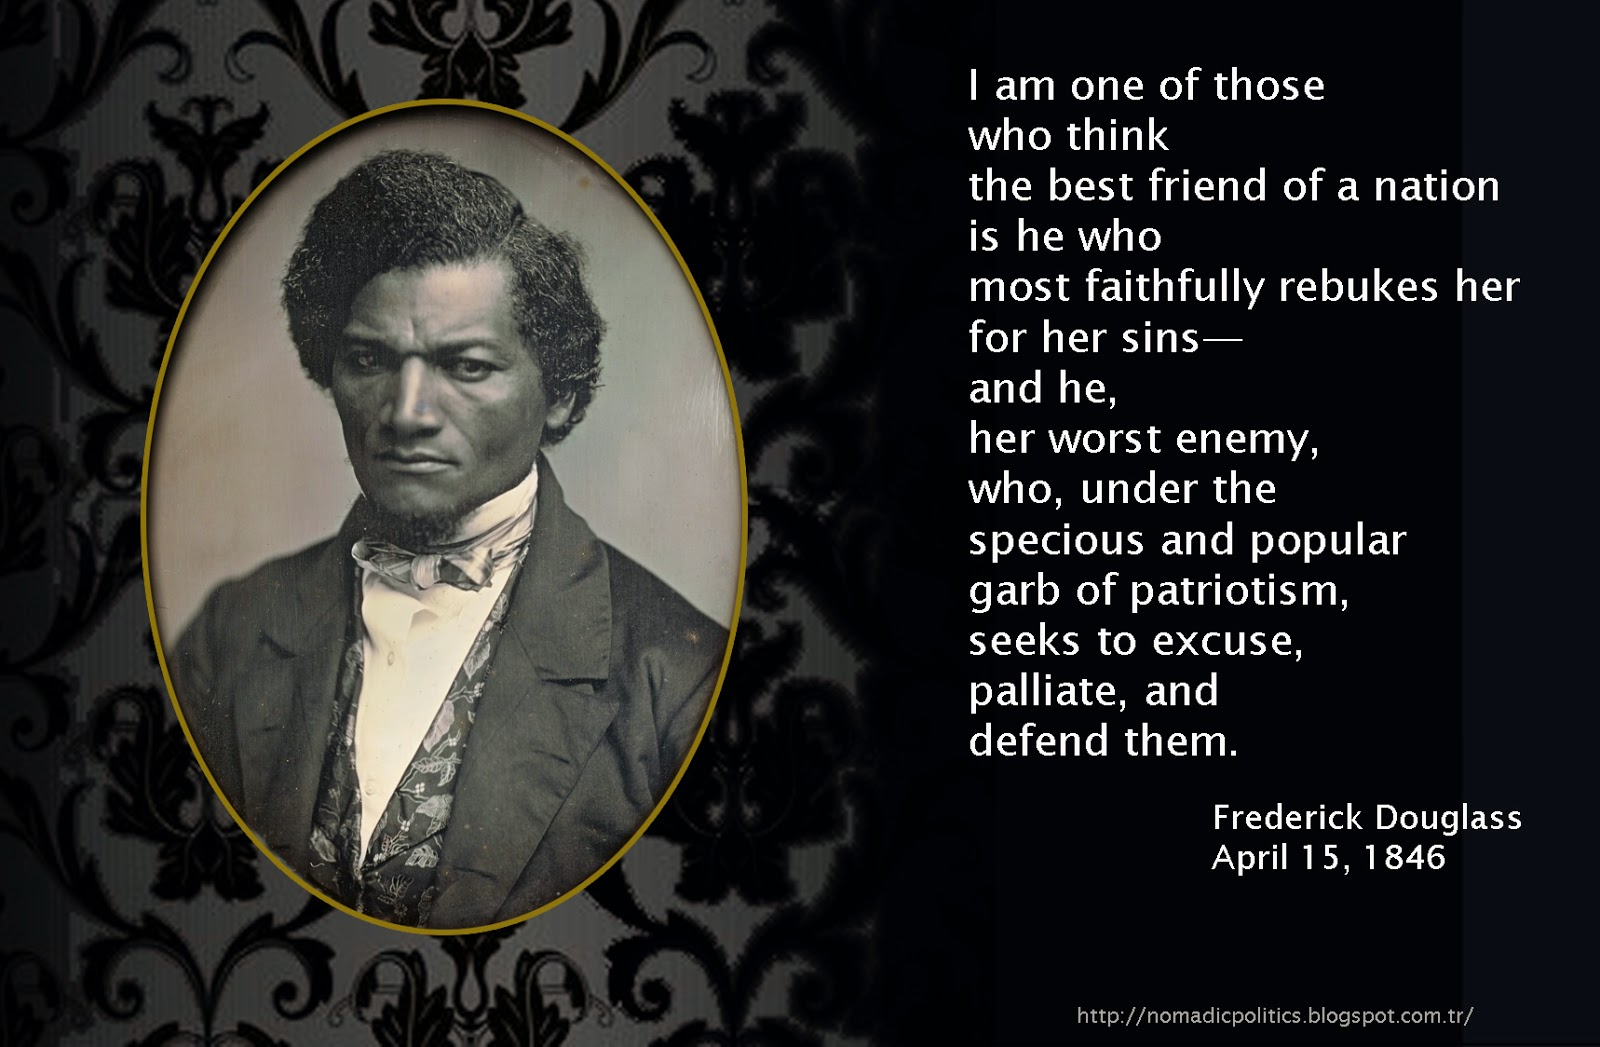 what it was like to be a slave according to frederick douglass Frederick douglass was a prominent american abolitionist, orator and author  born a slave, douglass escaped at age 20, and his three autobiographies are   not from me, but remained like ministering angels to cheer me through the gloom .